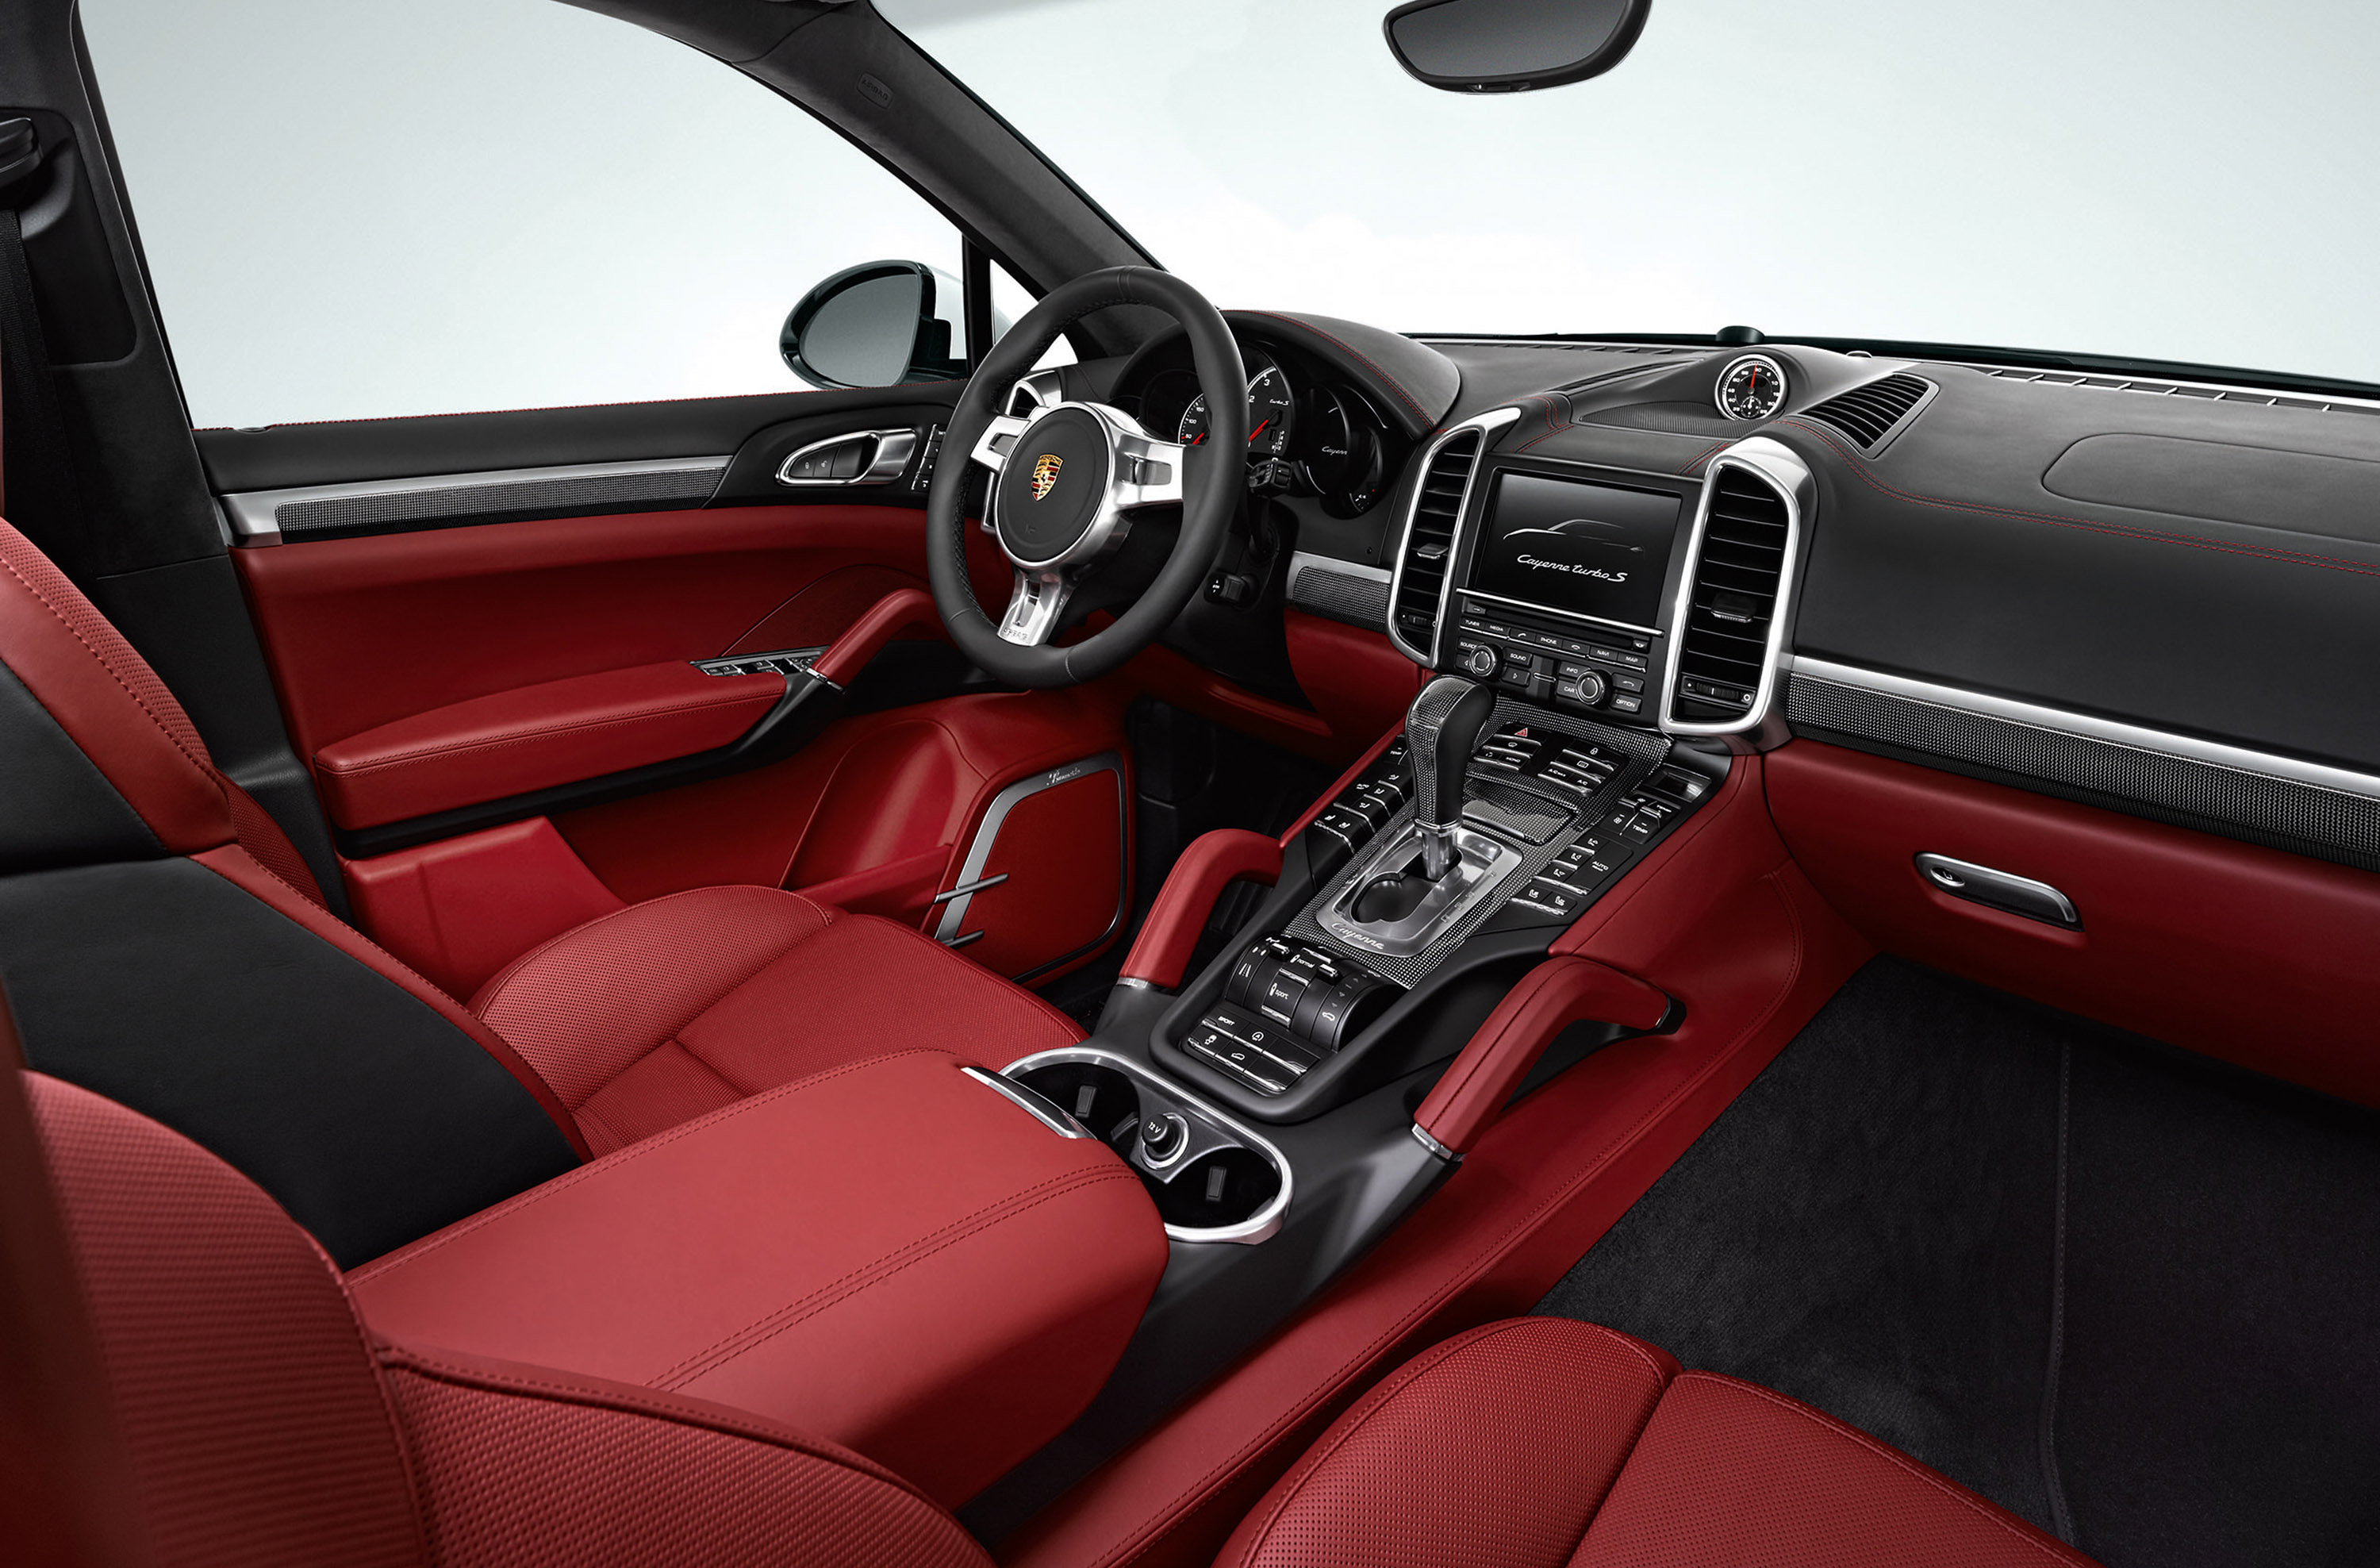 Porsche Cayenne Turbo S A Sports Car For Every Occasion